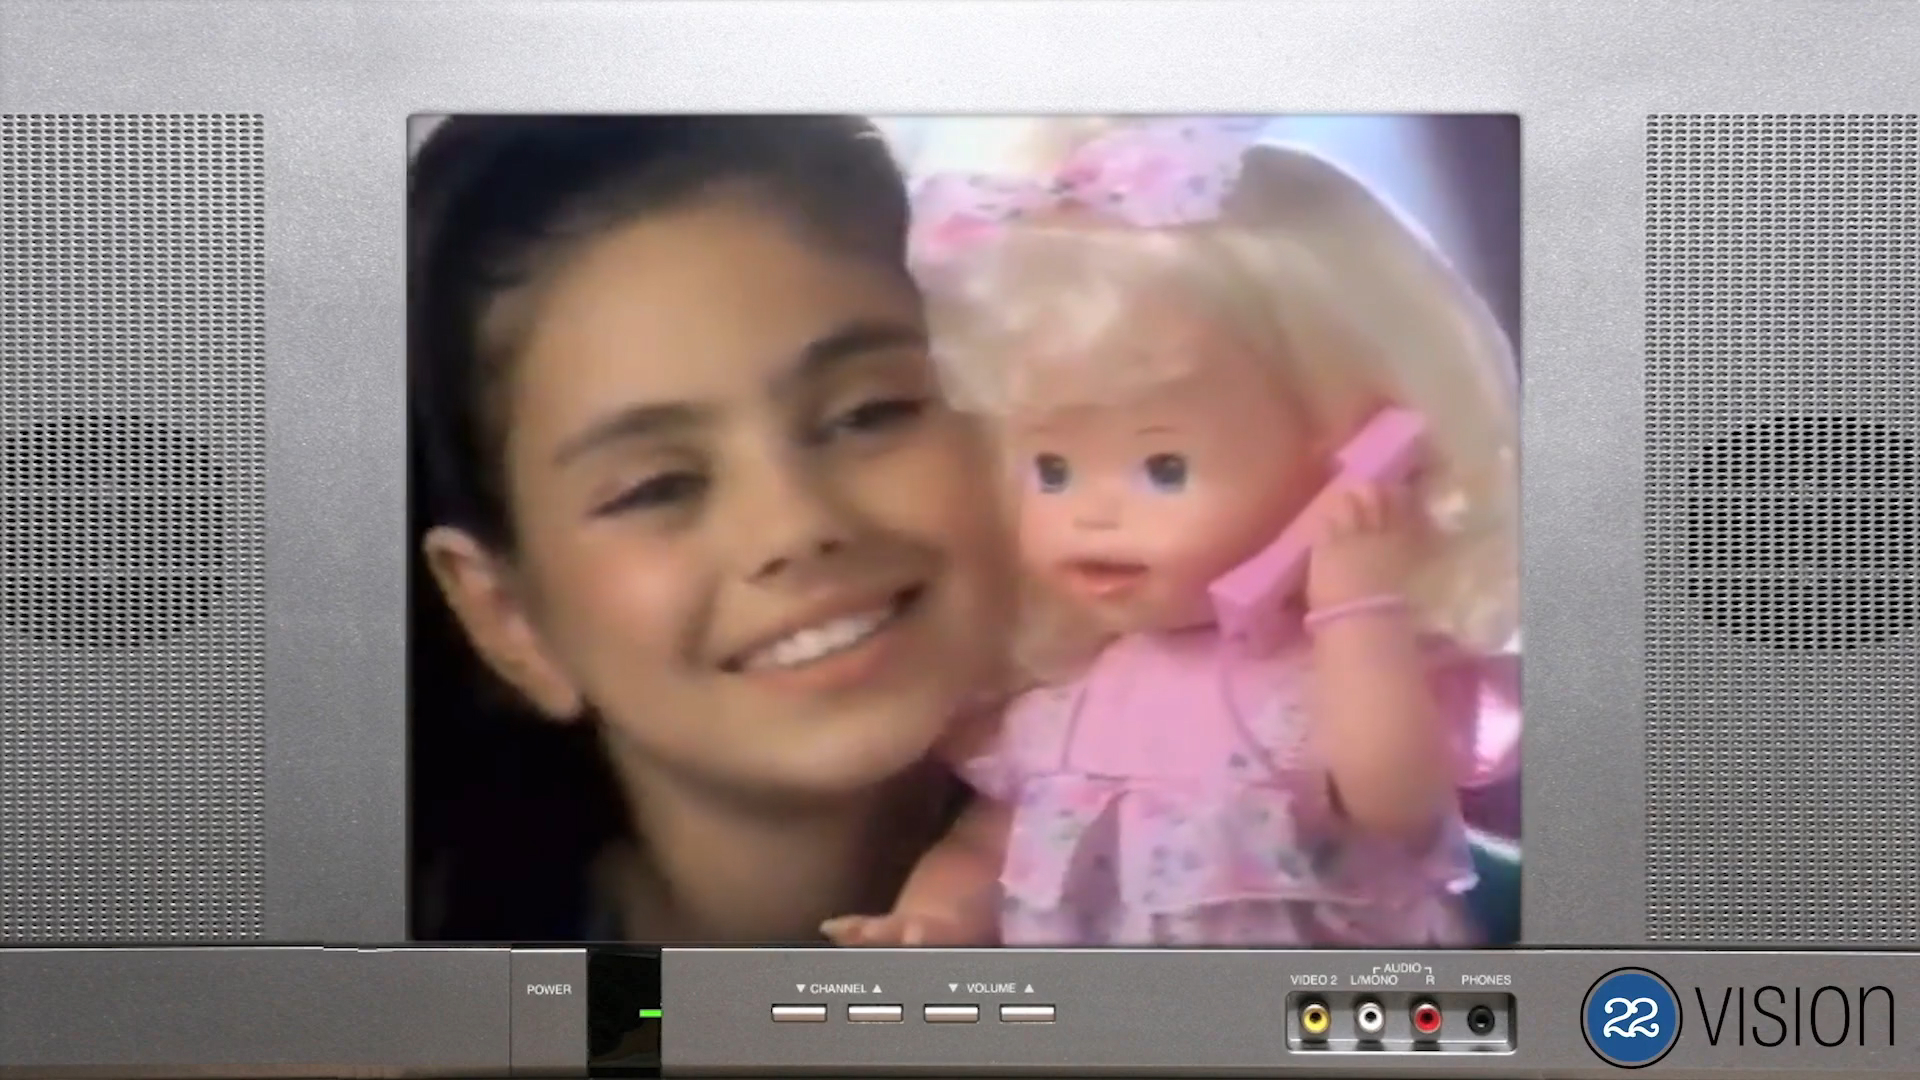 11-Year-Old Mila Kunis In 'Telephone Tammy' Doll Commercial